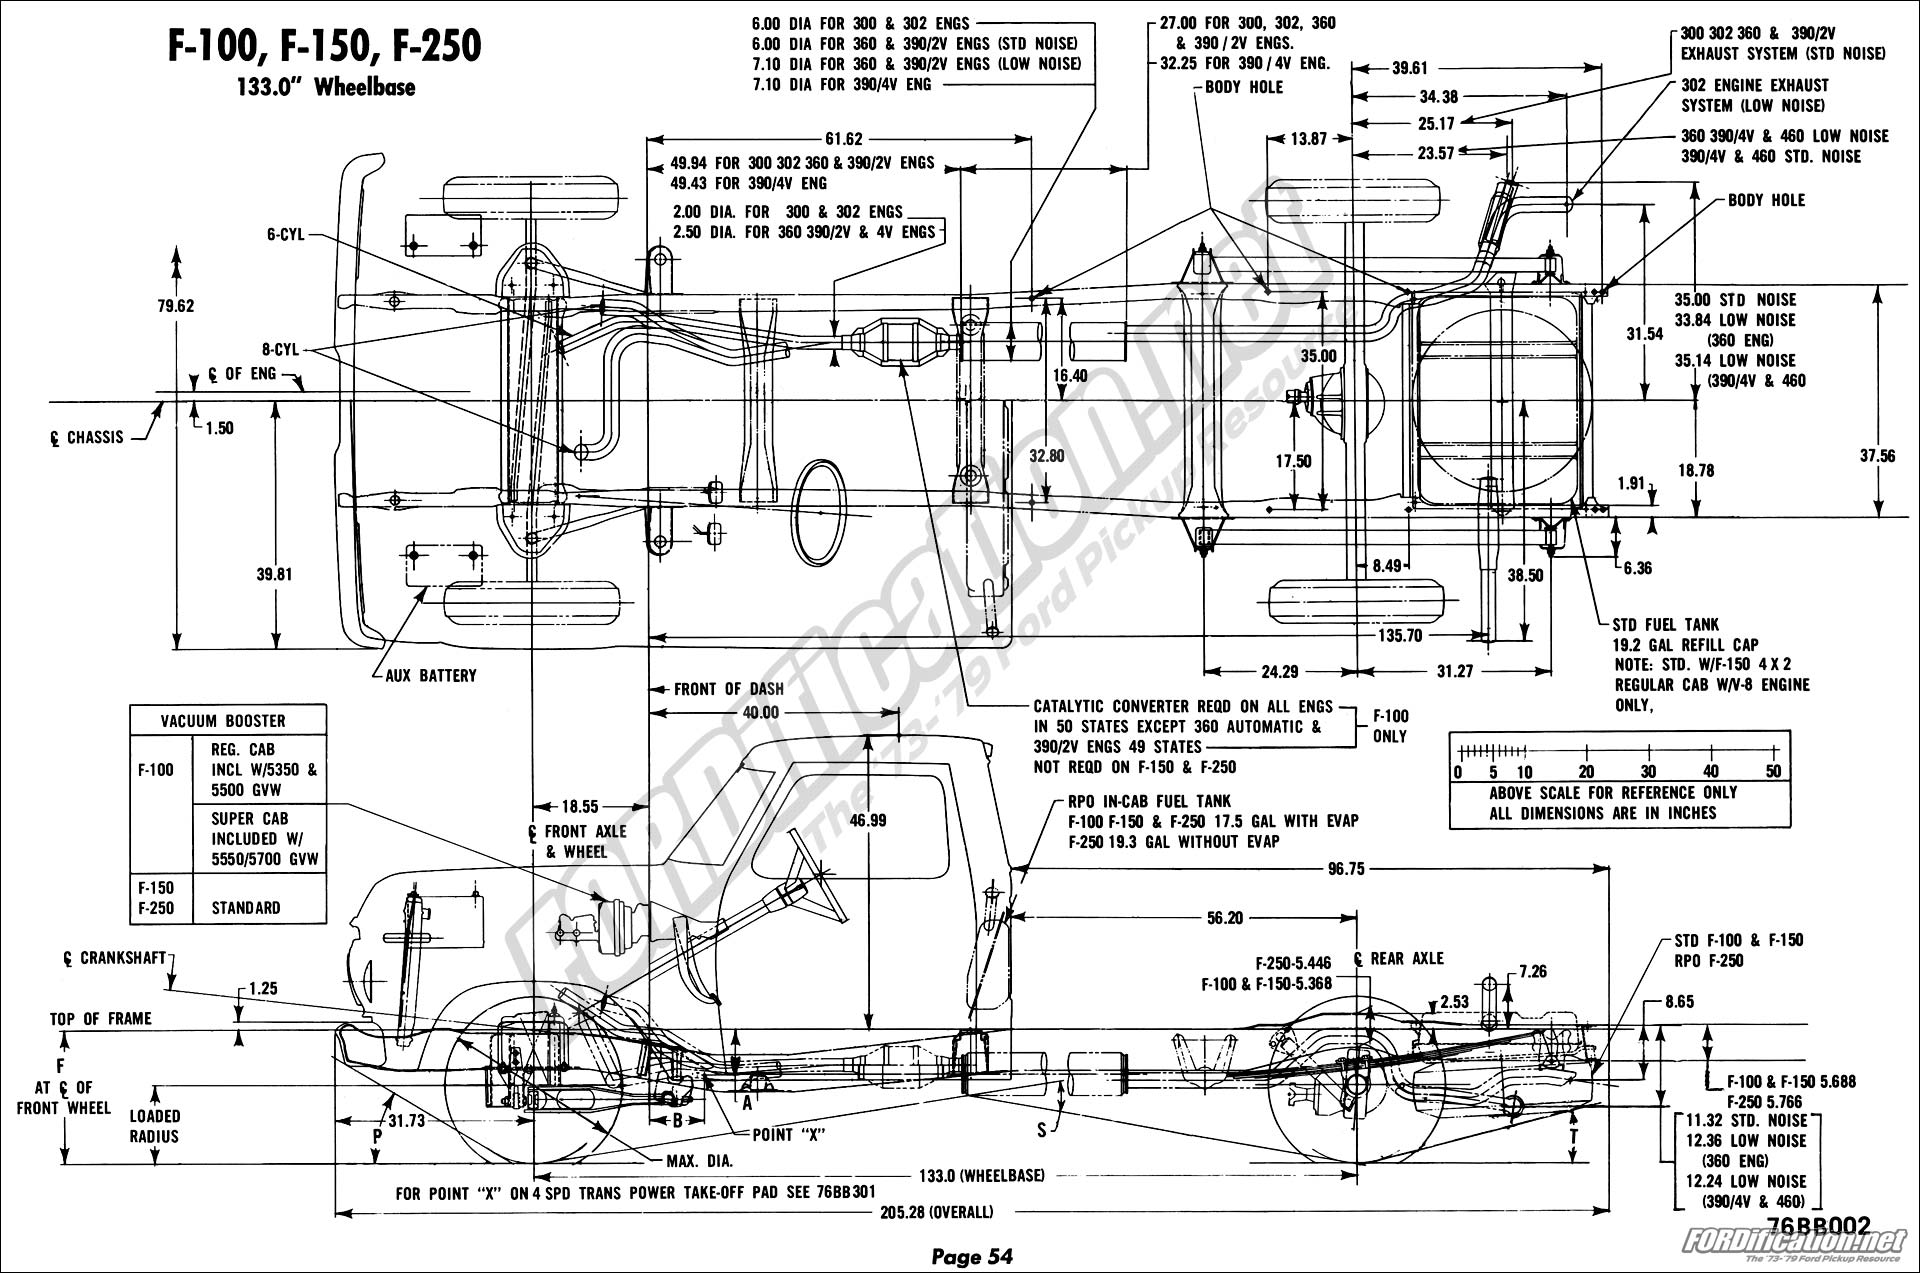 ford f 250 steering column wiring diagram with 1333138 Re Building A Wrecked F 150 Bent Frame 5 on 7jt7f Ford F 350 4wd Diesel 7 3l 1999 Ford F 350 4wd additionally OtHoao as well 9032 Wiring Problemhelp furthermore 1989 Ford F 250 Steering Column Diagram as well Index.